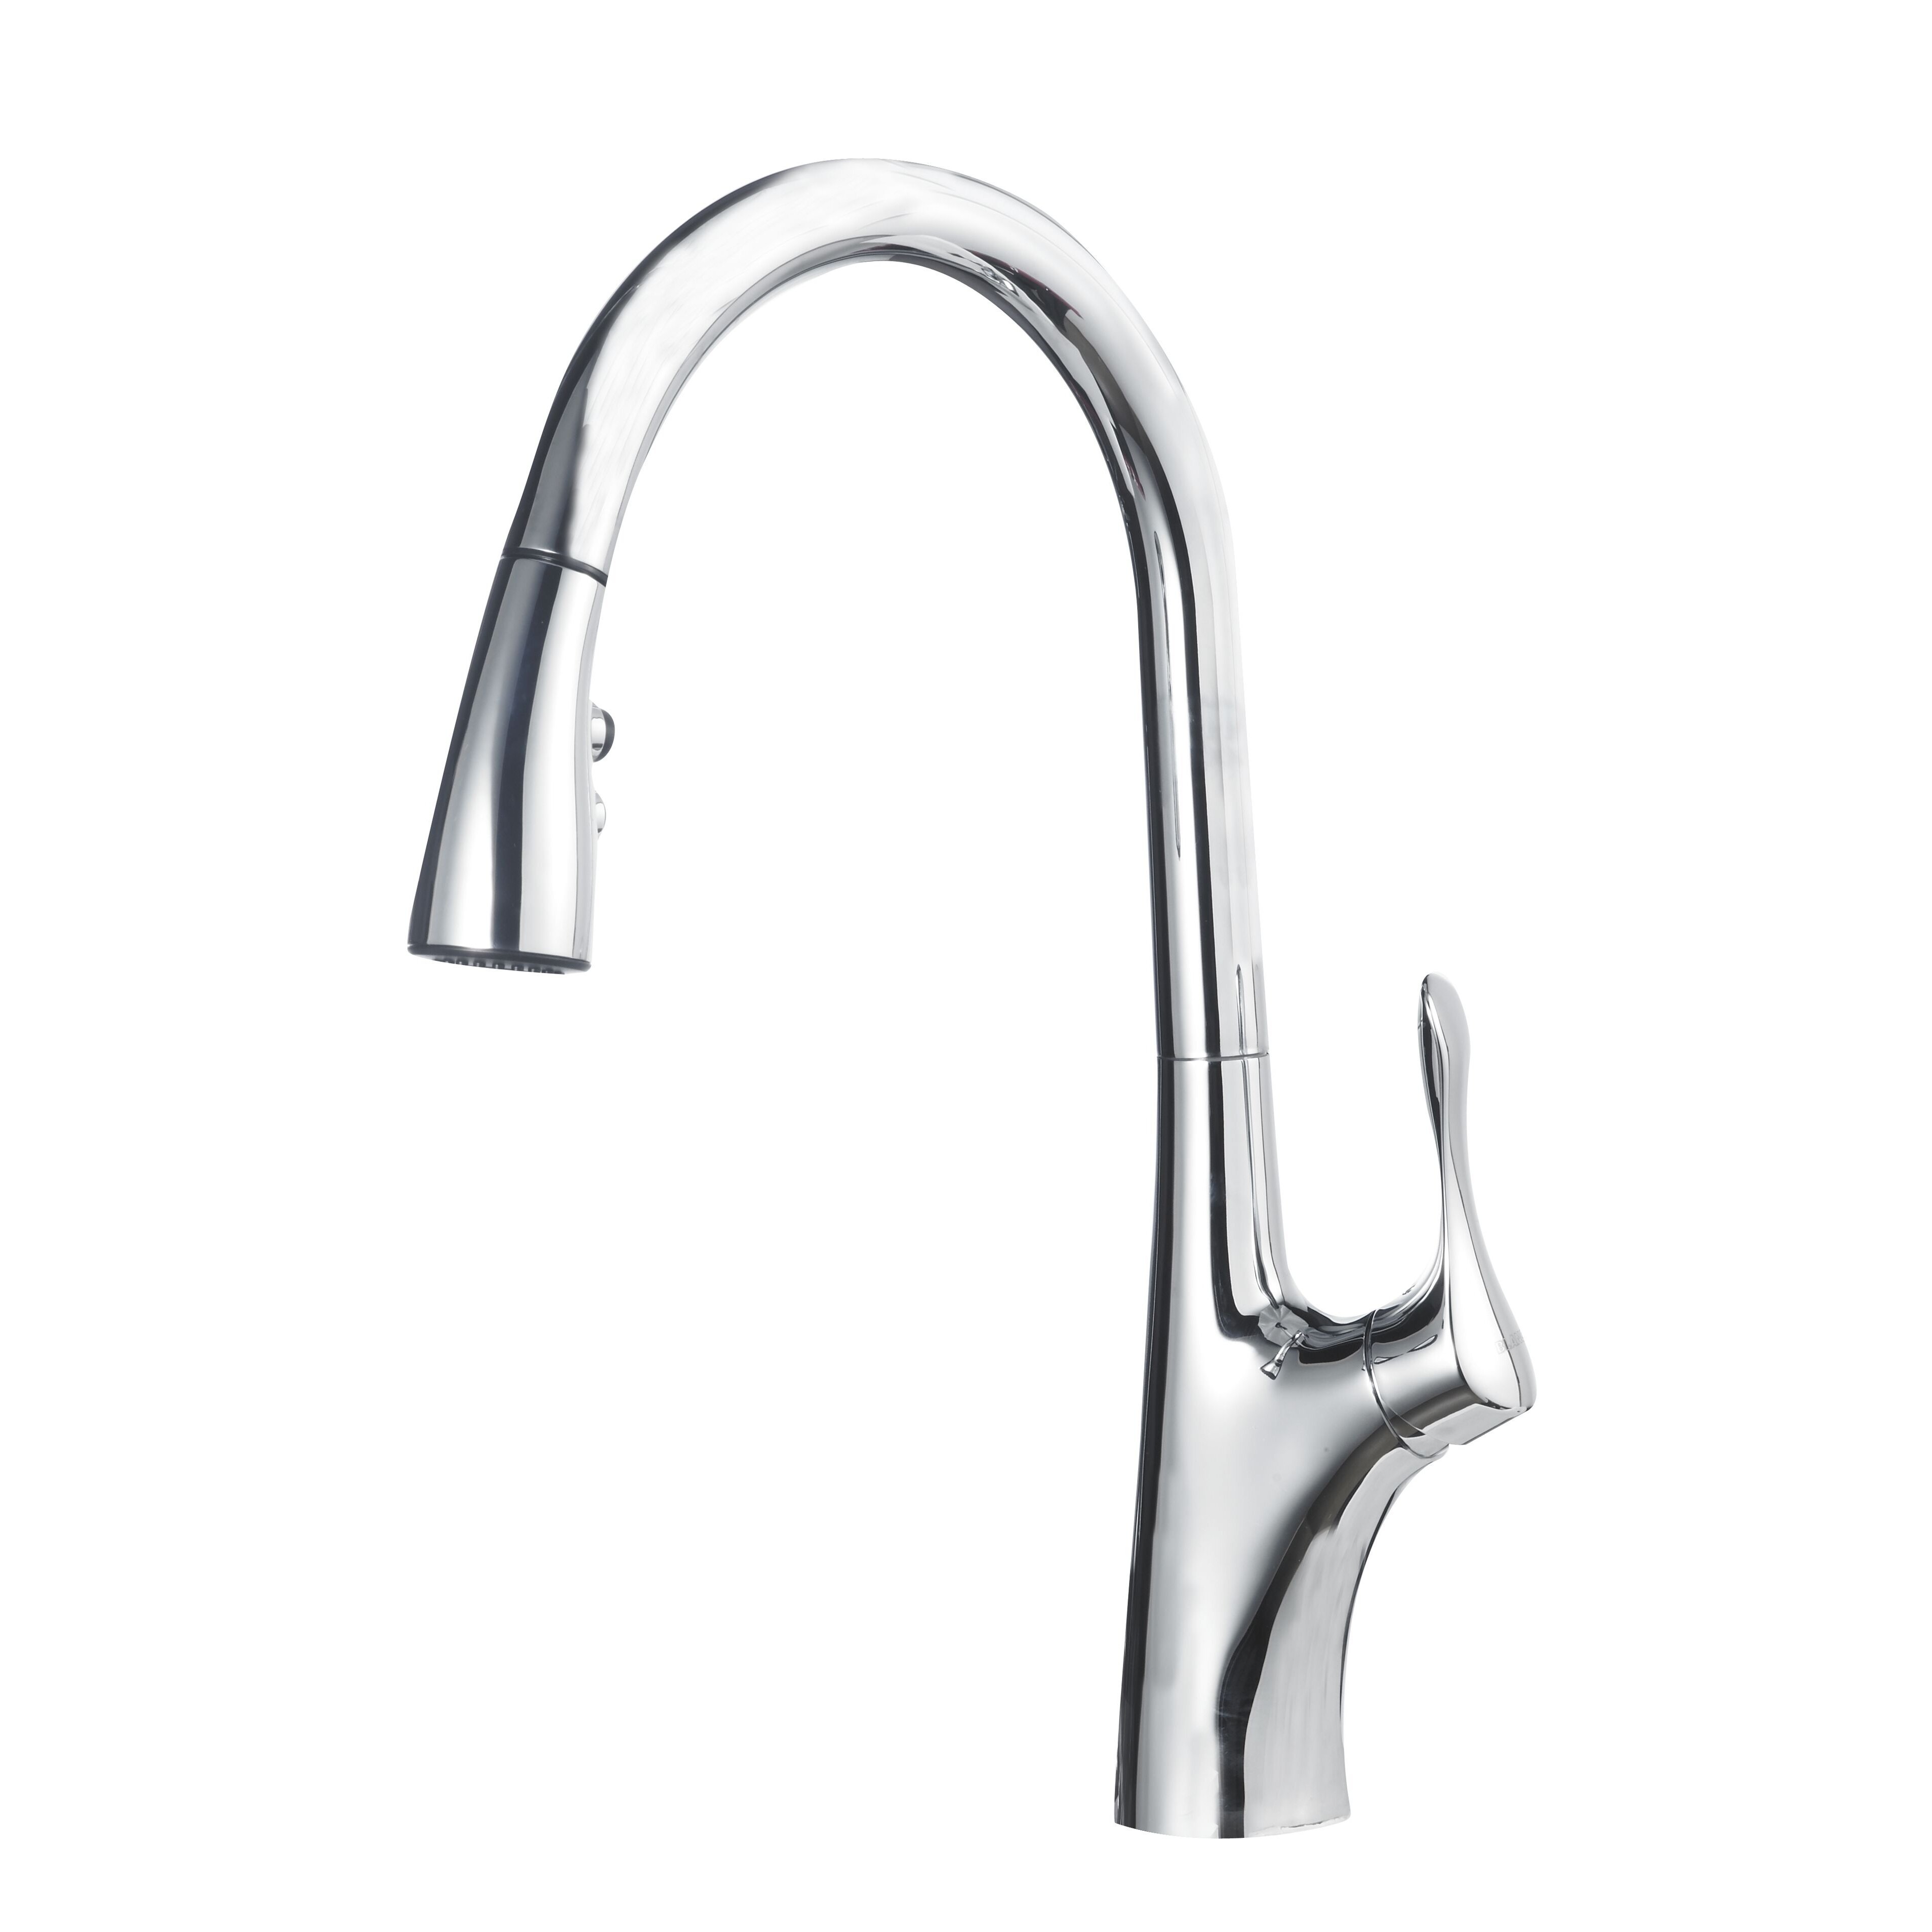 Blanco Faucet Reviews : Blanco Napa Single Handle Deck Mounted Standard Kitchen Faucet with ...